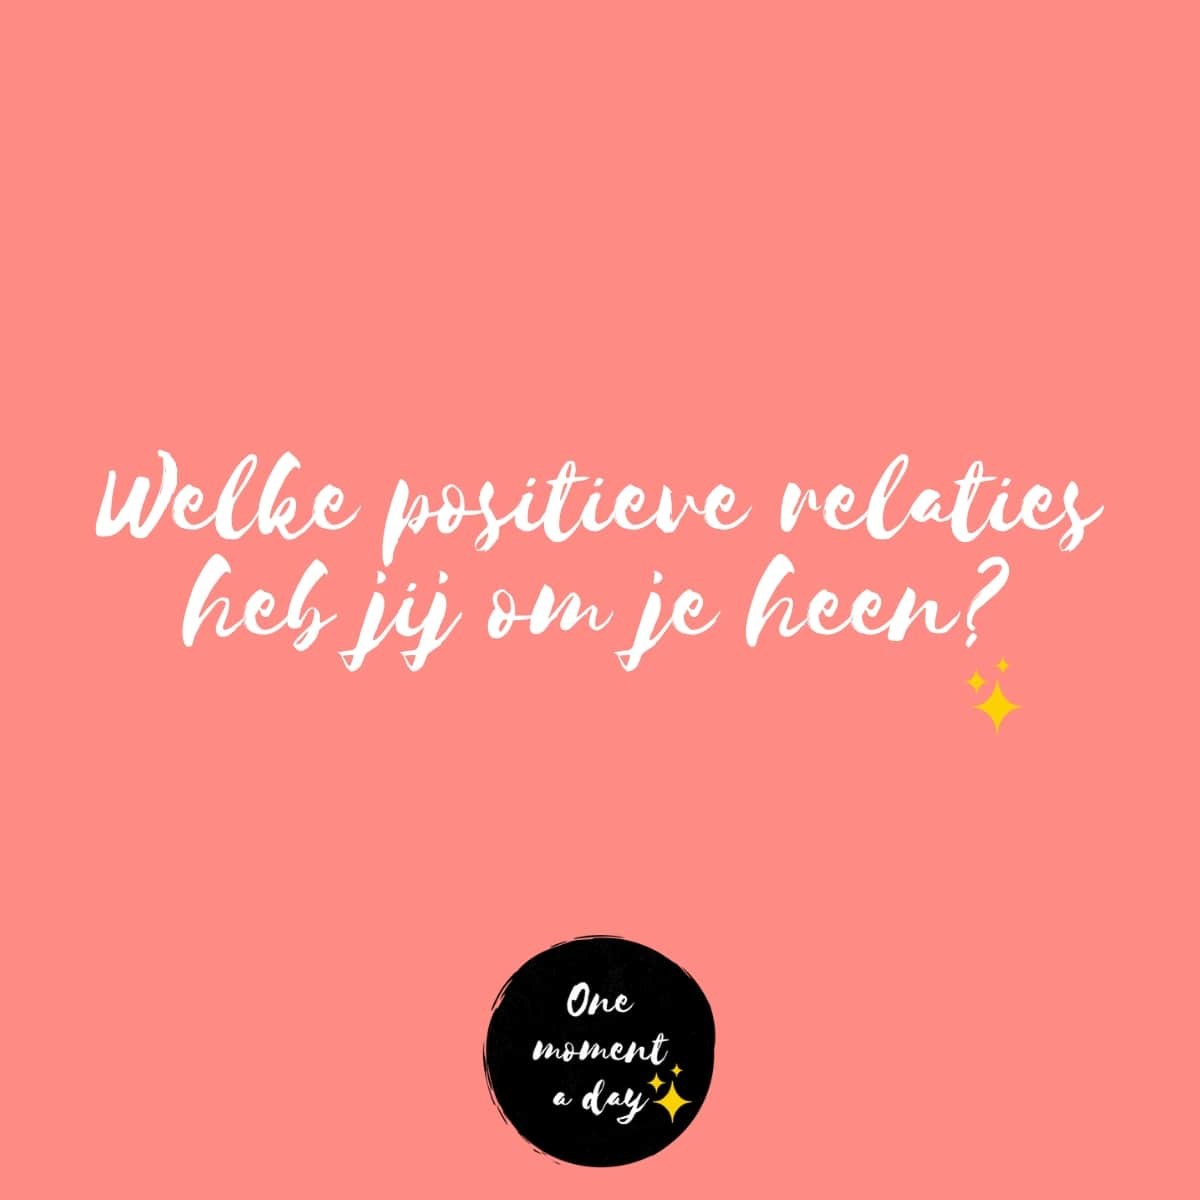 One moment a day | Positieve relaties